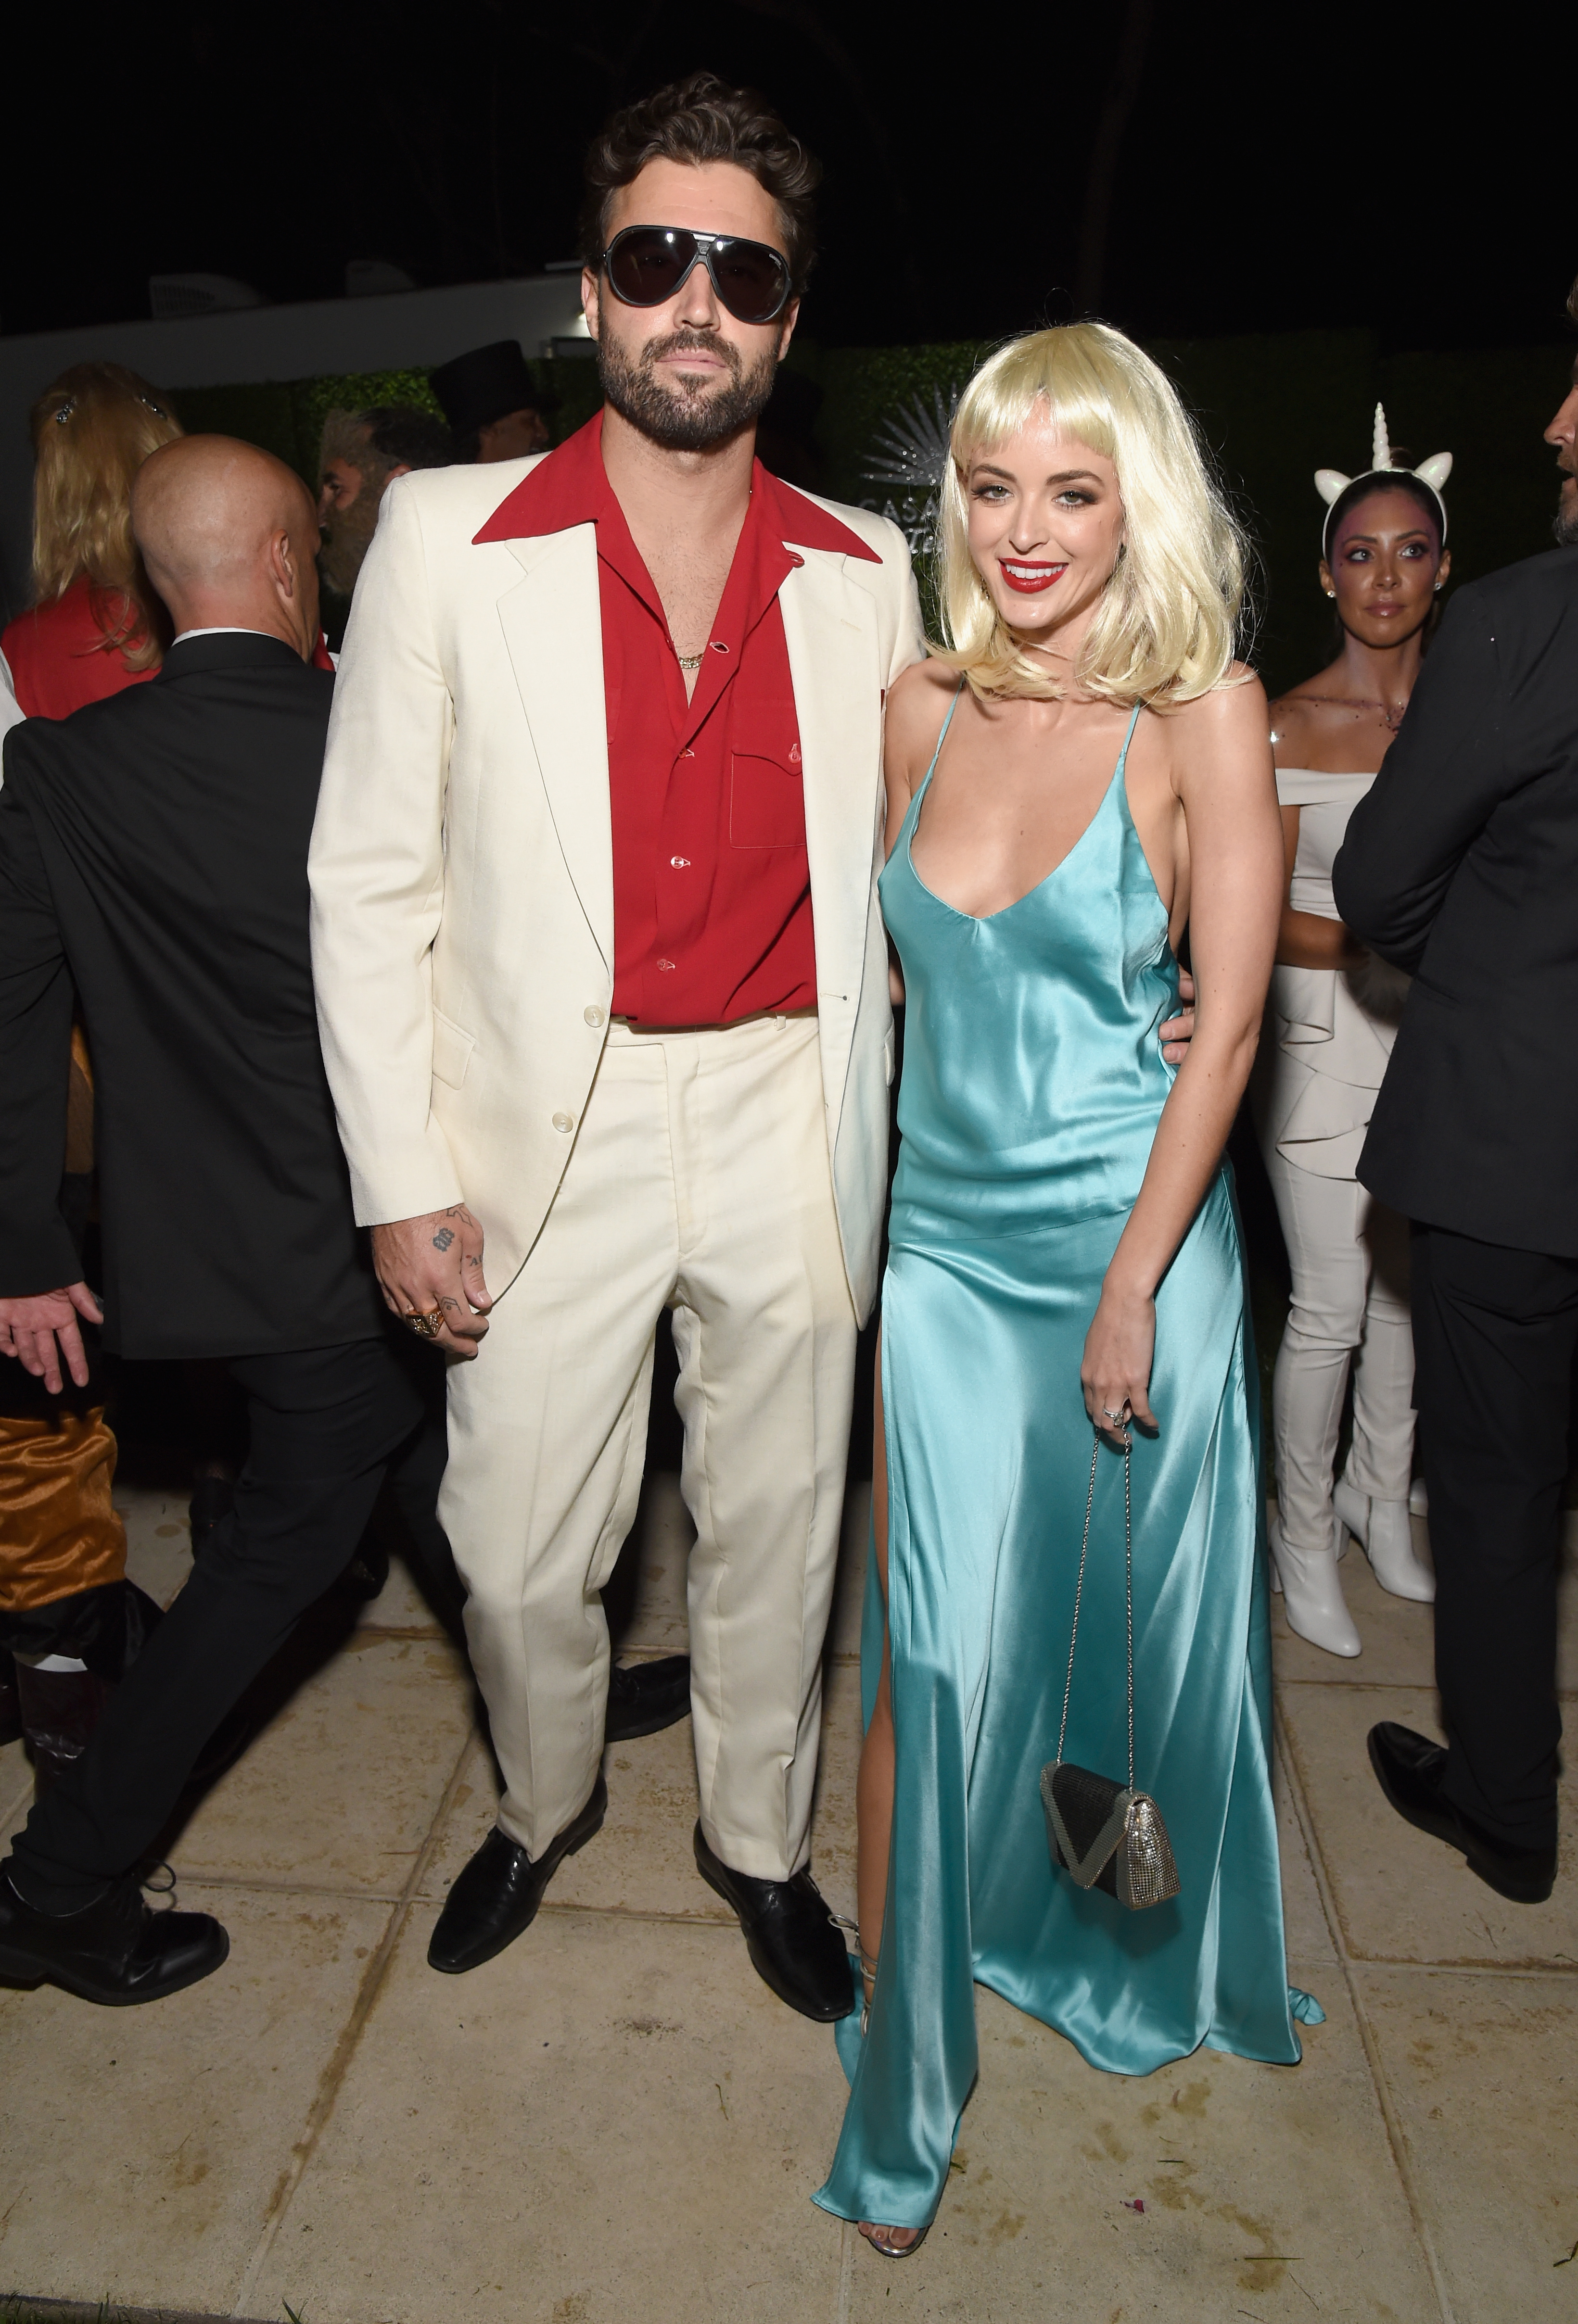 Brody Jenner and Kaitlynn Carter go retro for the Casamigos Halloween party in Los Angeles, Calif., on Oct. 26, 2018.